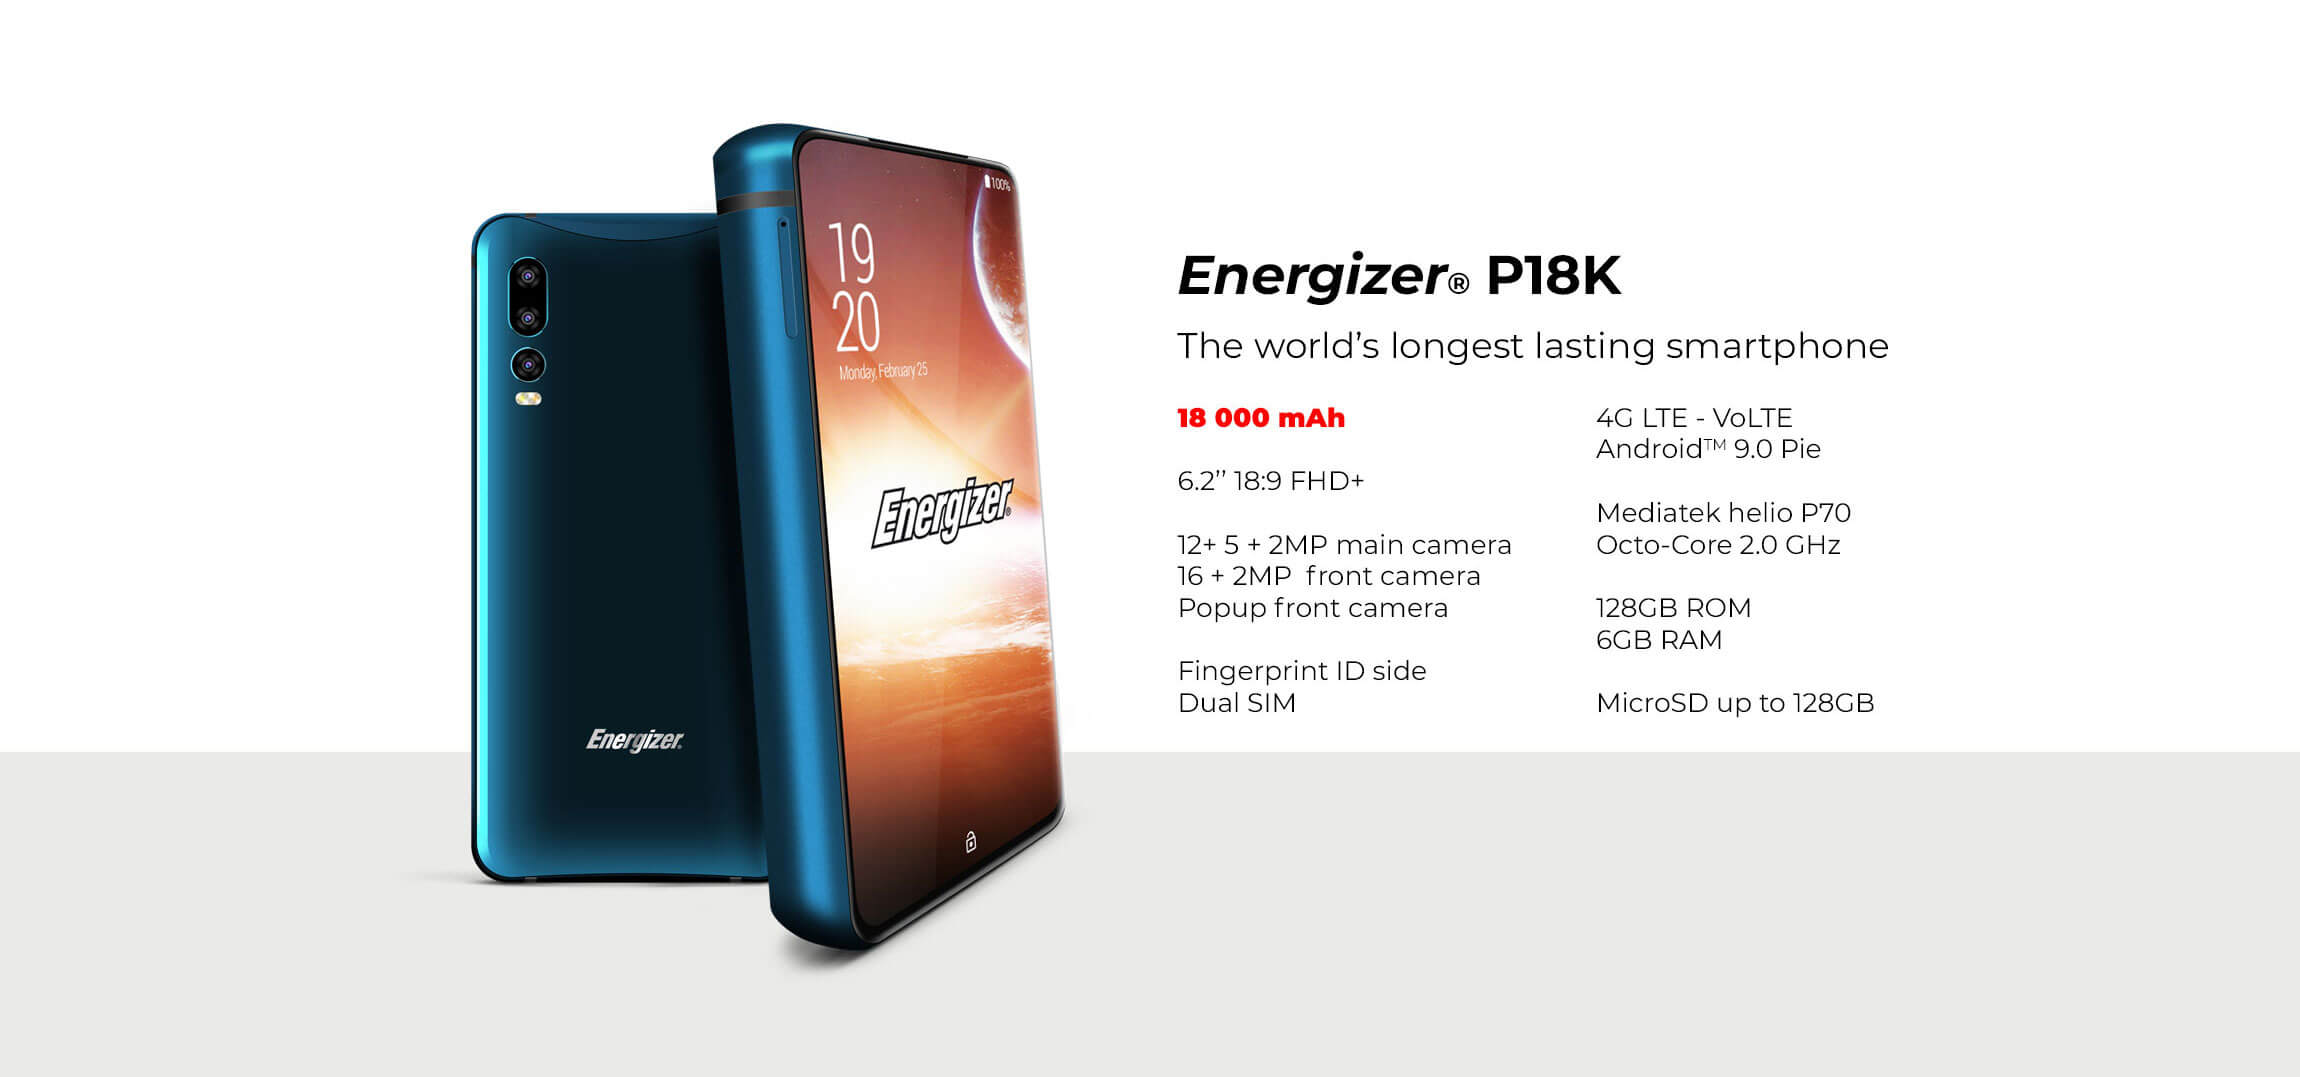 worst-smartphone-android-energizer-p18k